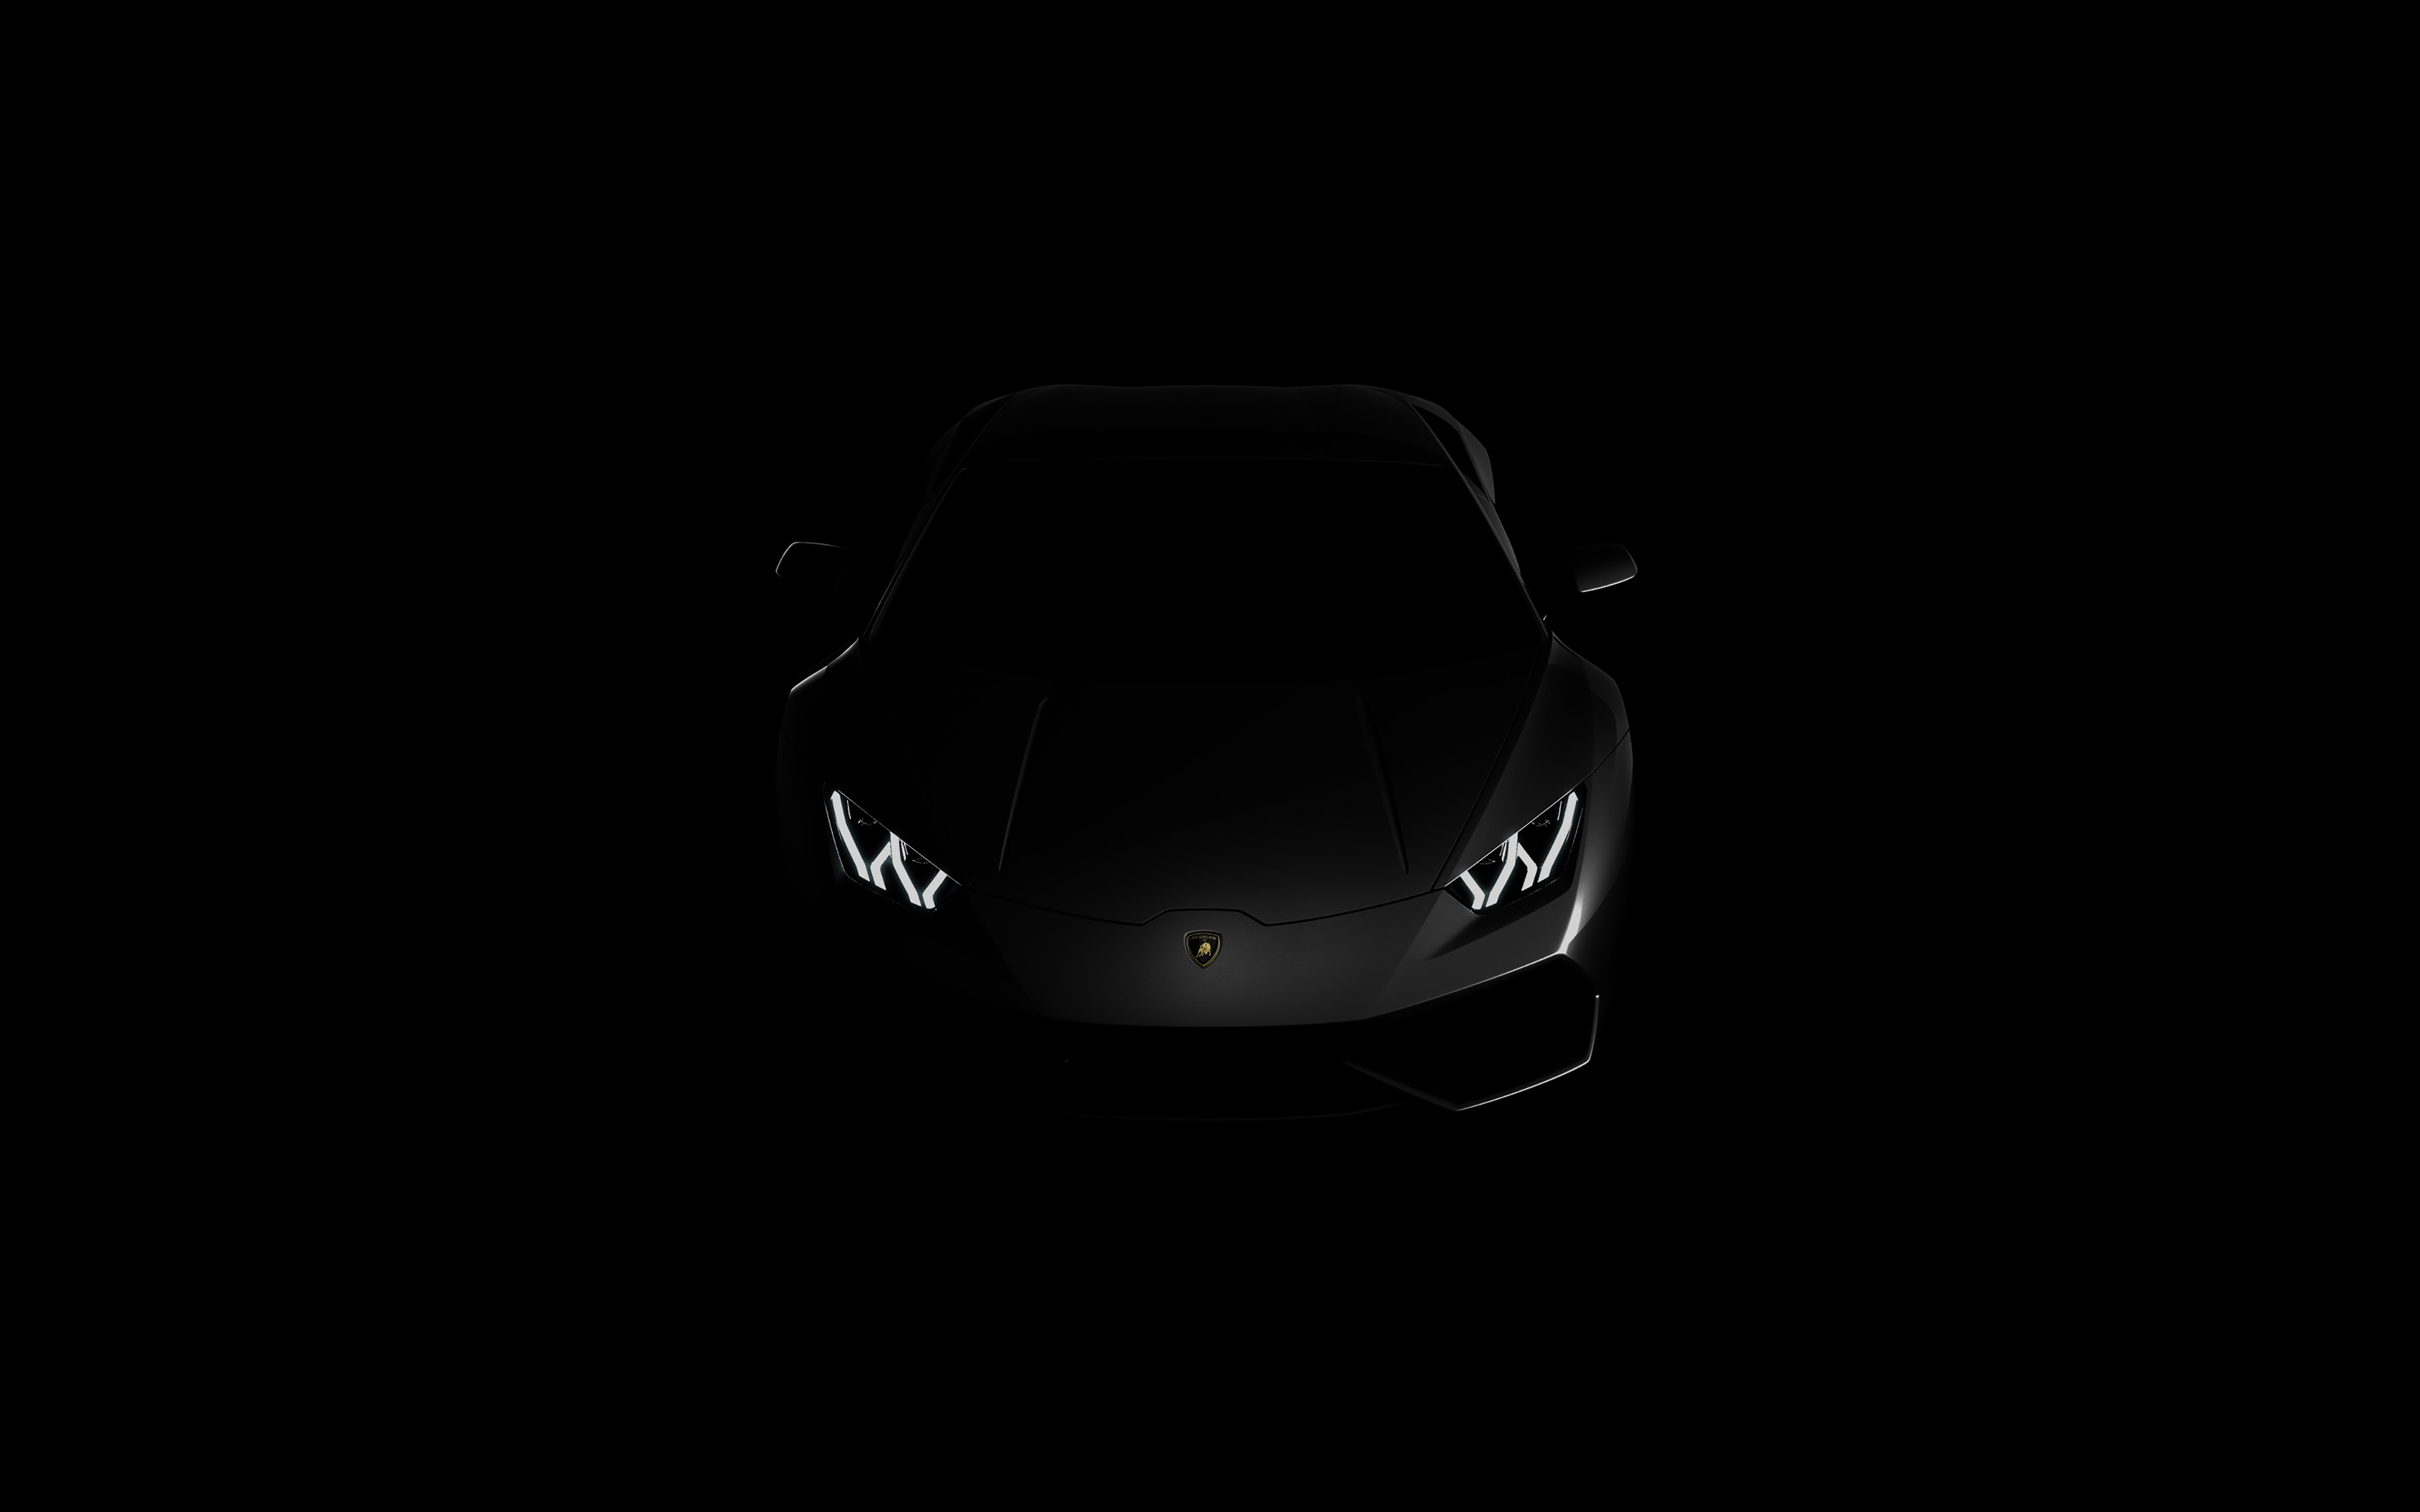 Lamborghini huracan lp black dark 4k wallpaper View HD 3840x2400